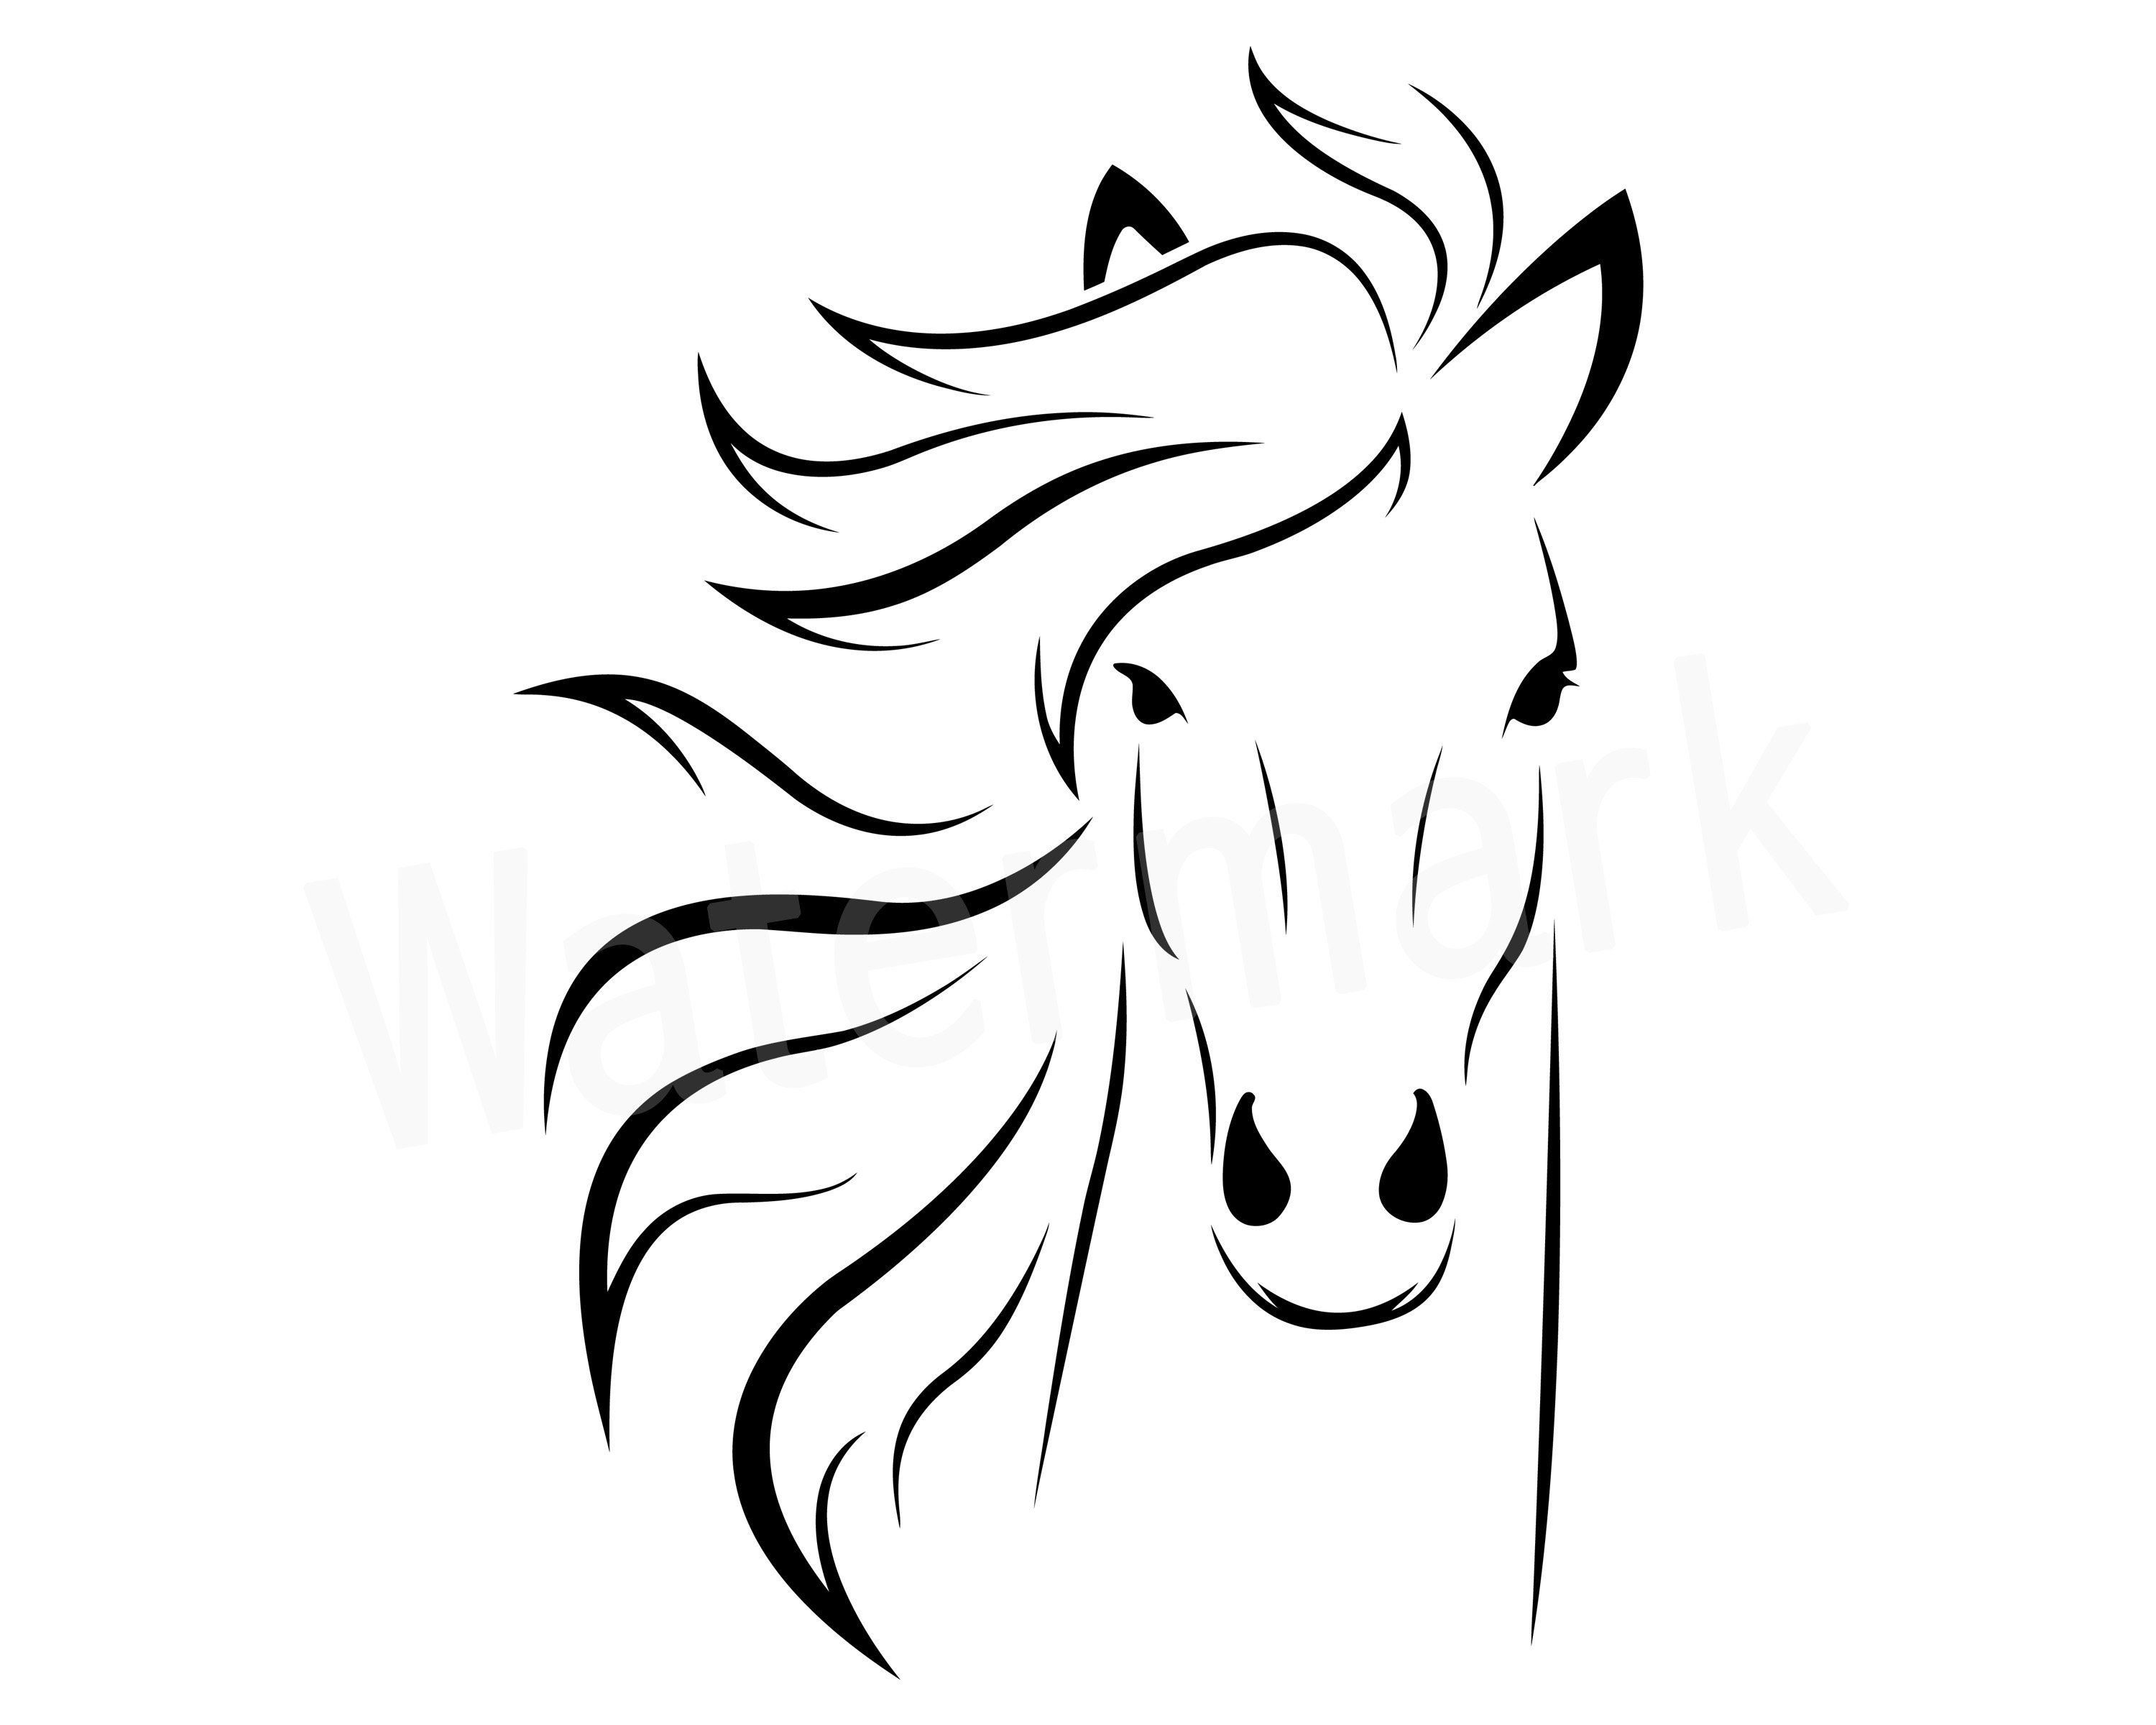 Horse head. Svg pony vector decal